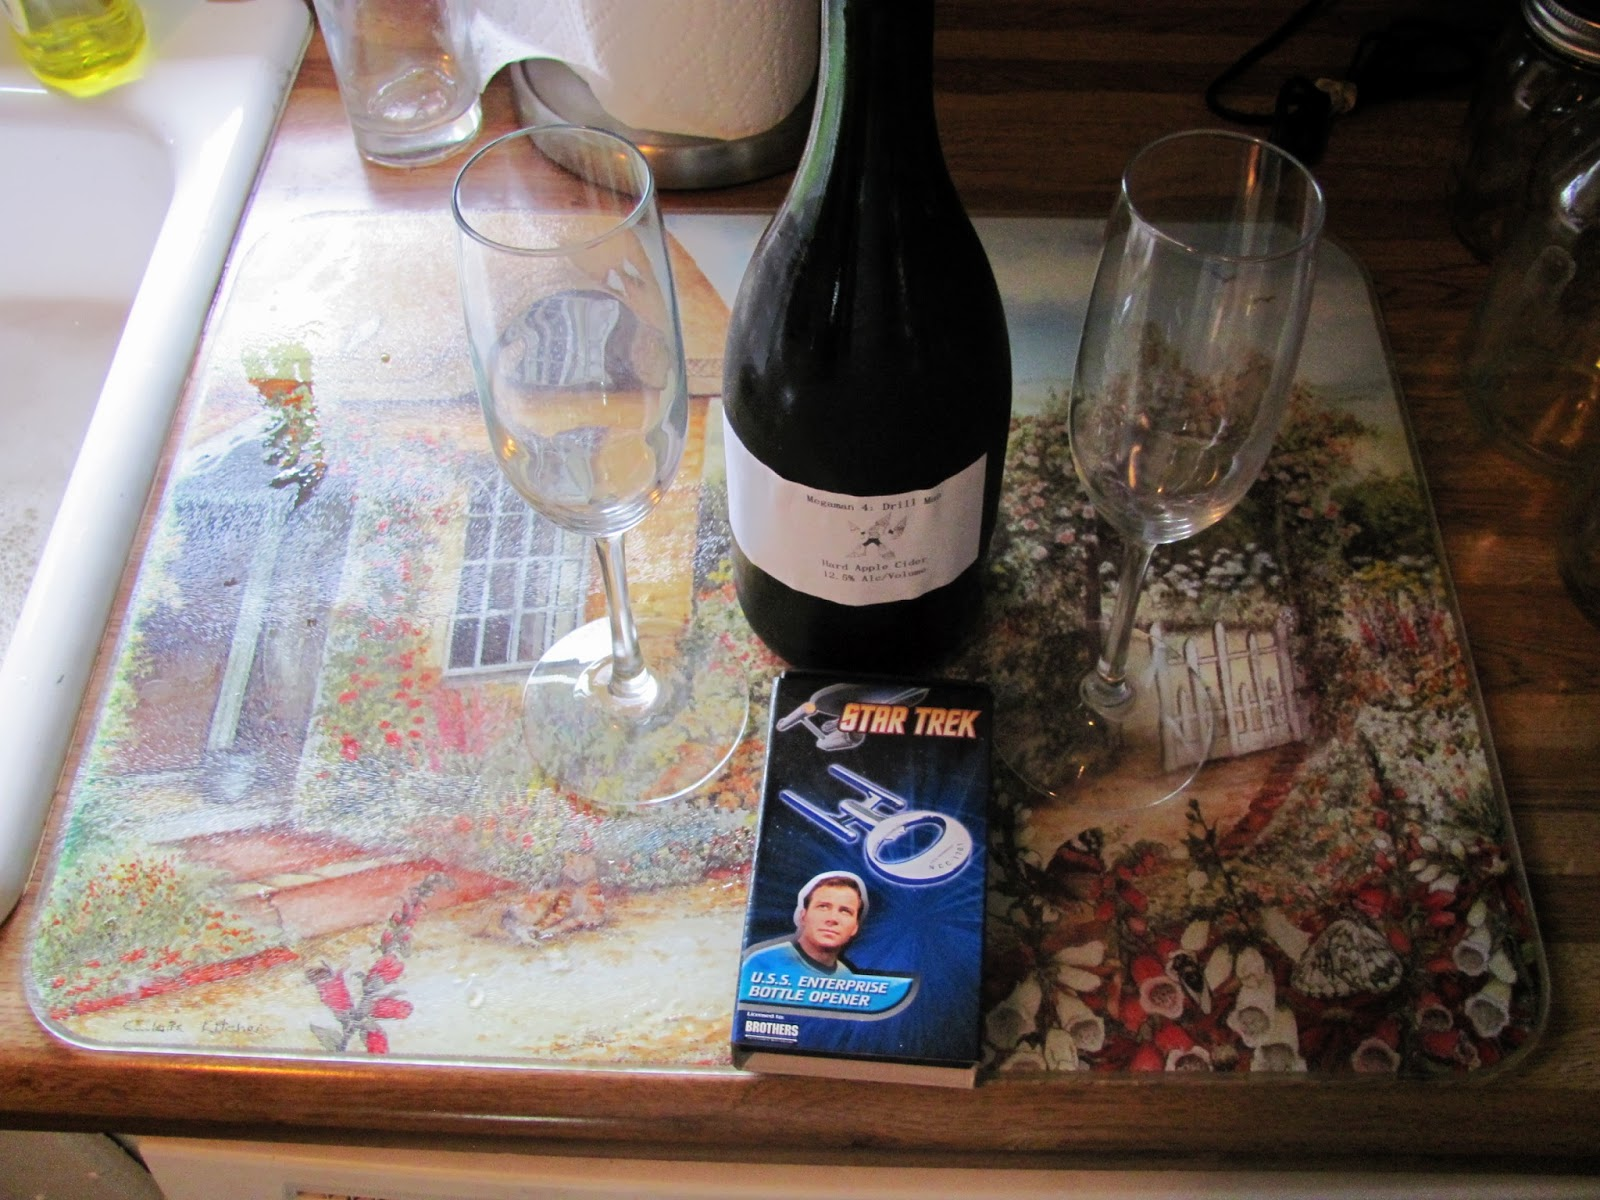 Drill Man apple cider with Star Trek bottle opener and champagne flutes